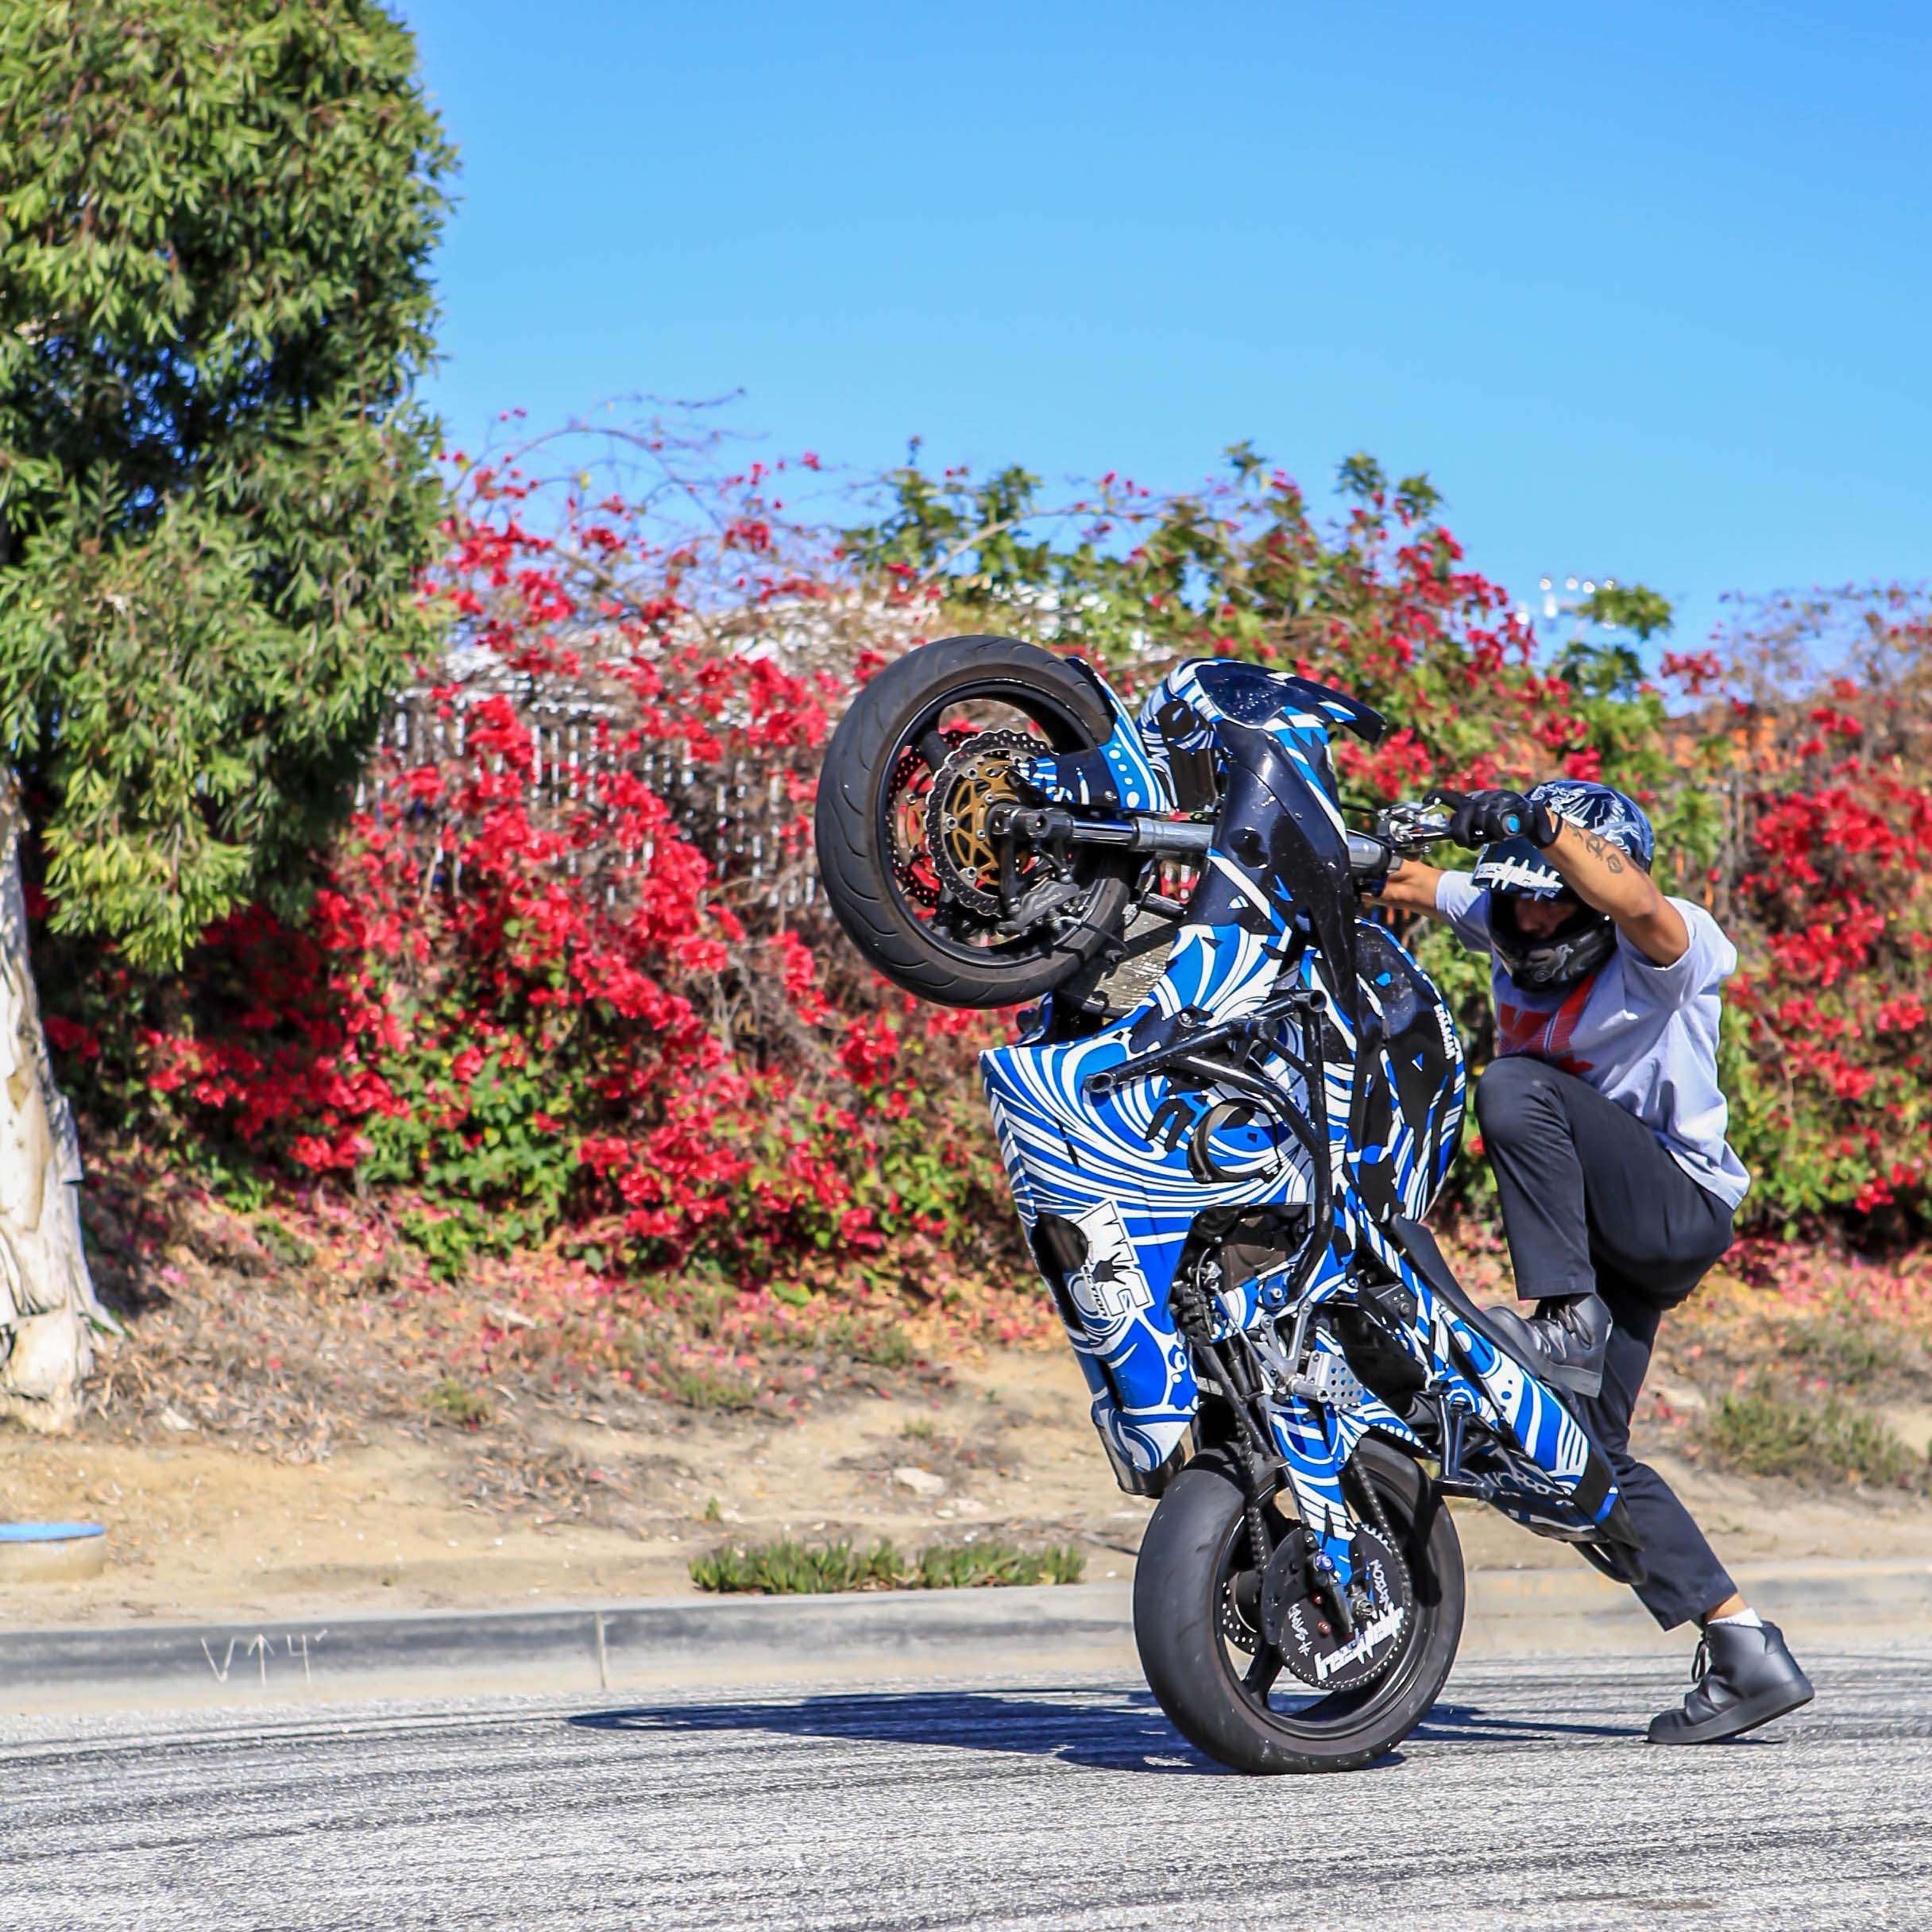 Photo-by-SarahNicole-Photographer_Stunt-Rider.jpg